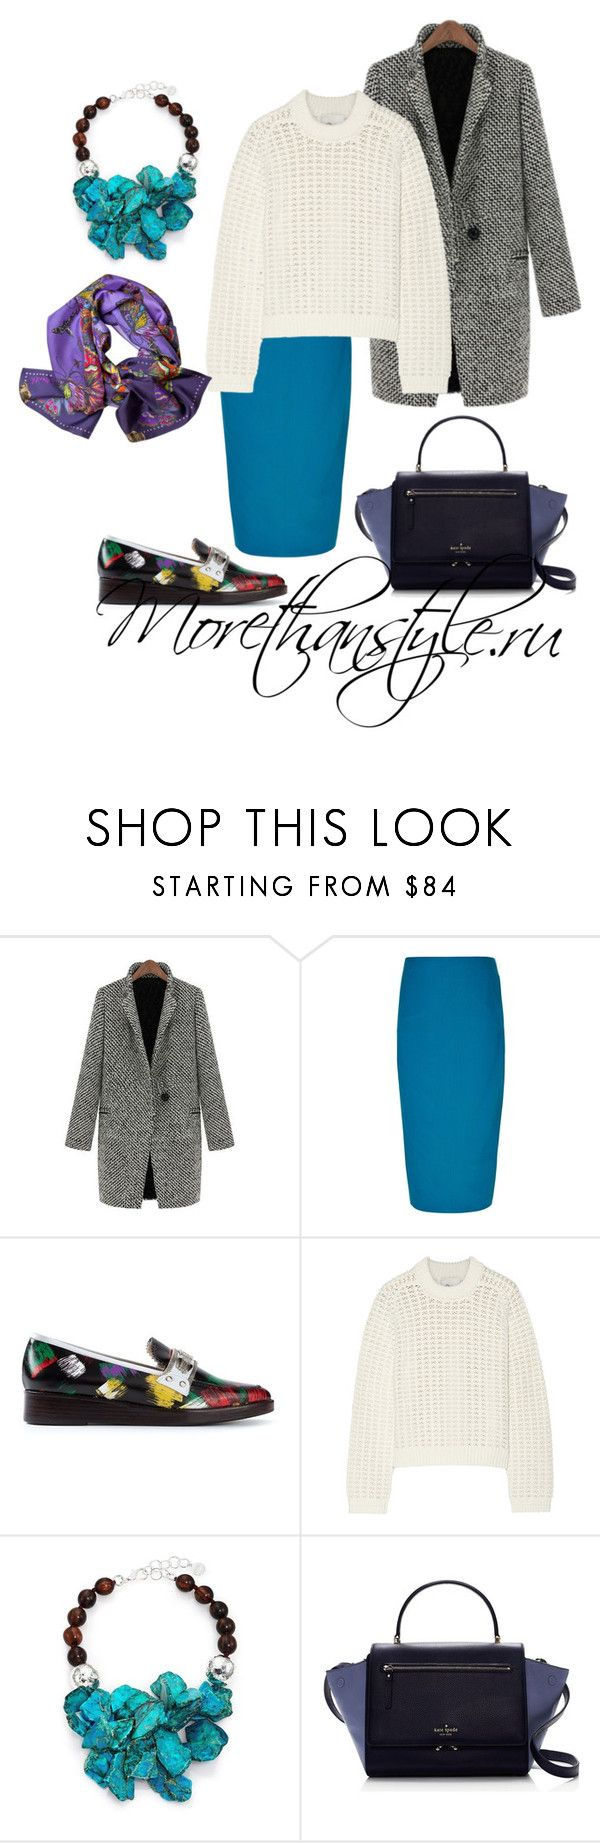 """""""Casual outfit"""" by smileggal on Polyvore featuring мода, Sportmax, Toga, 3.1 Phillip Lim, Nest, Kate Spade и HELEN RUTH"""